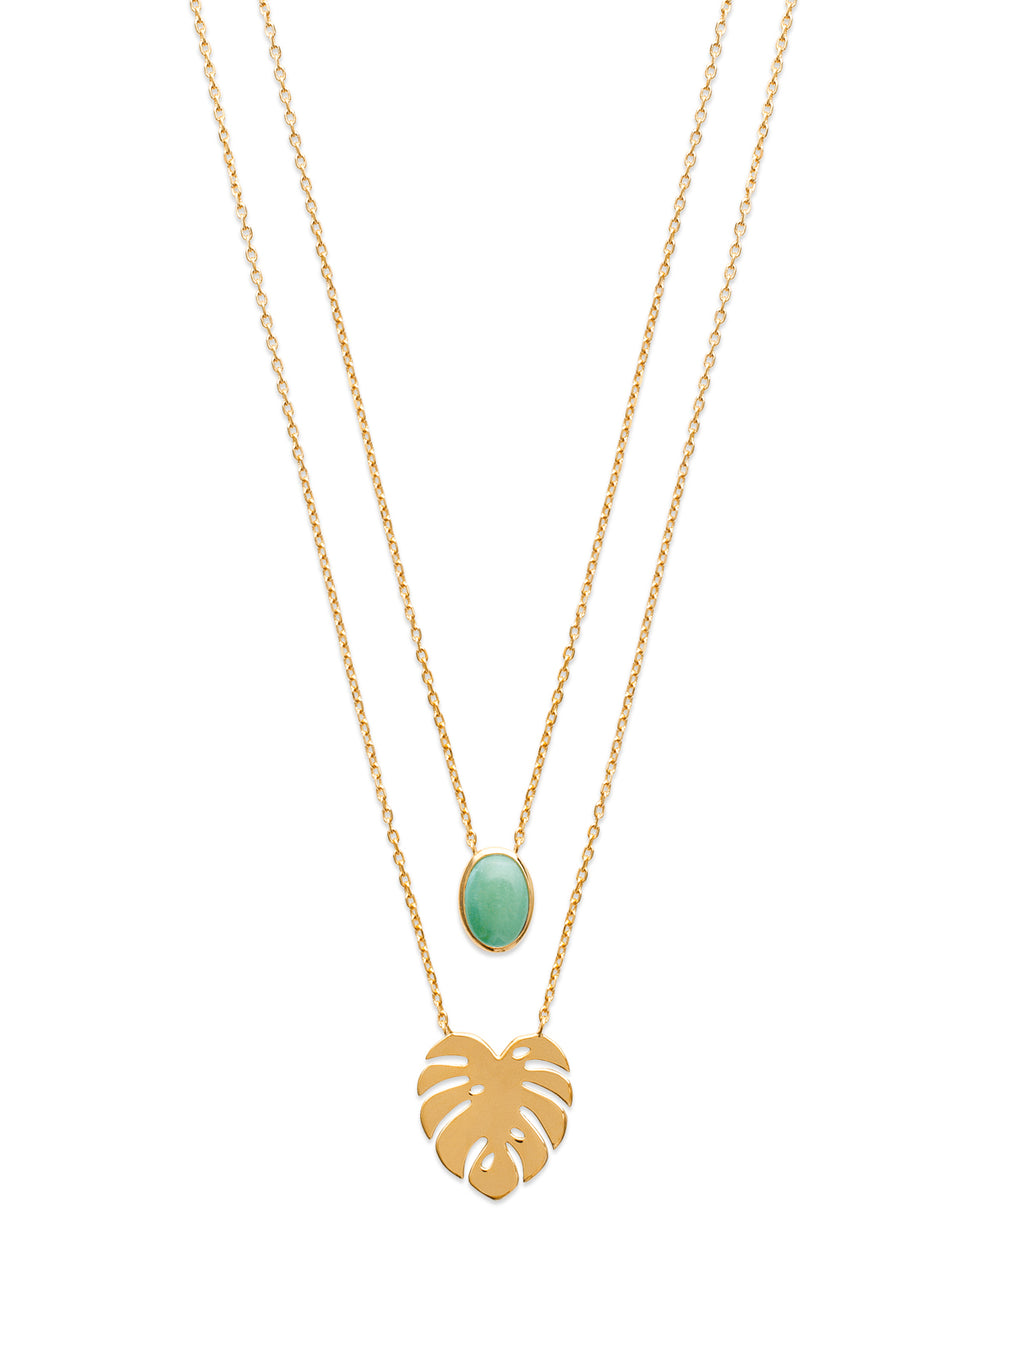 Gold Palm Leaf and Aventurine Stone Multi-Chain Necklace